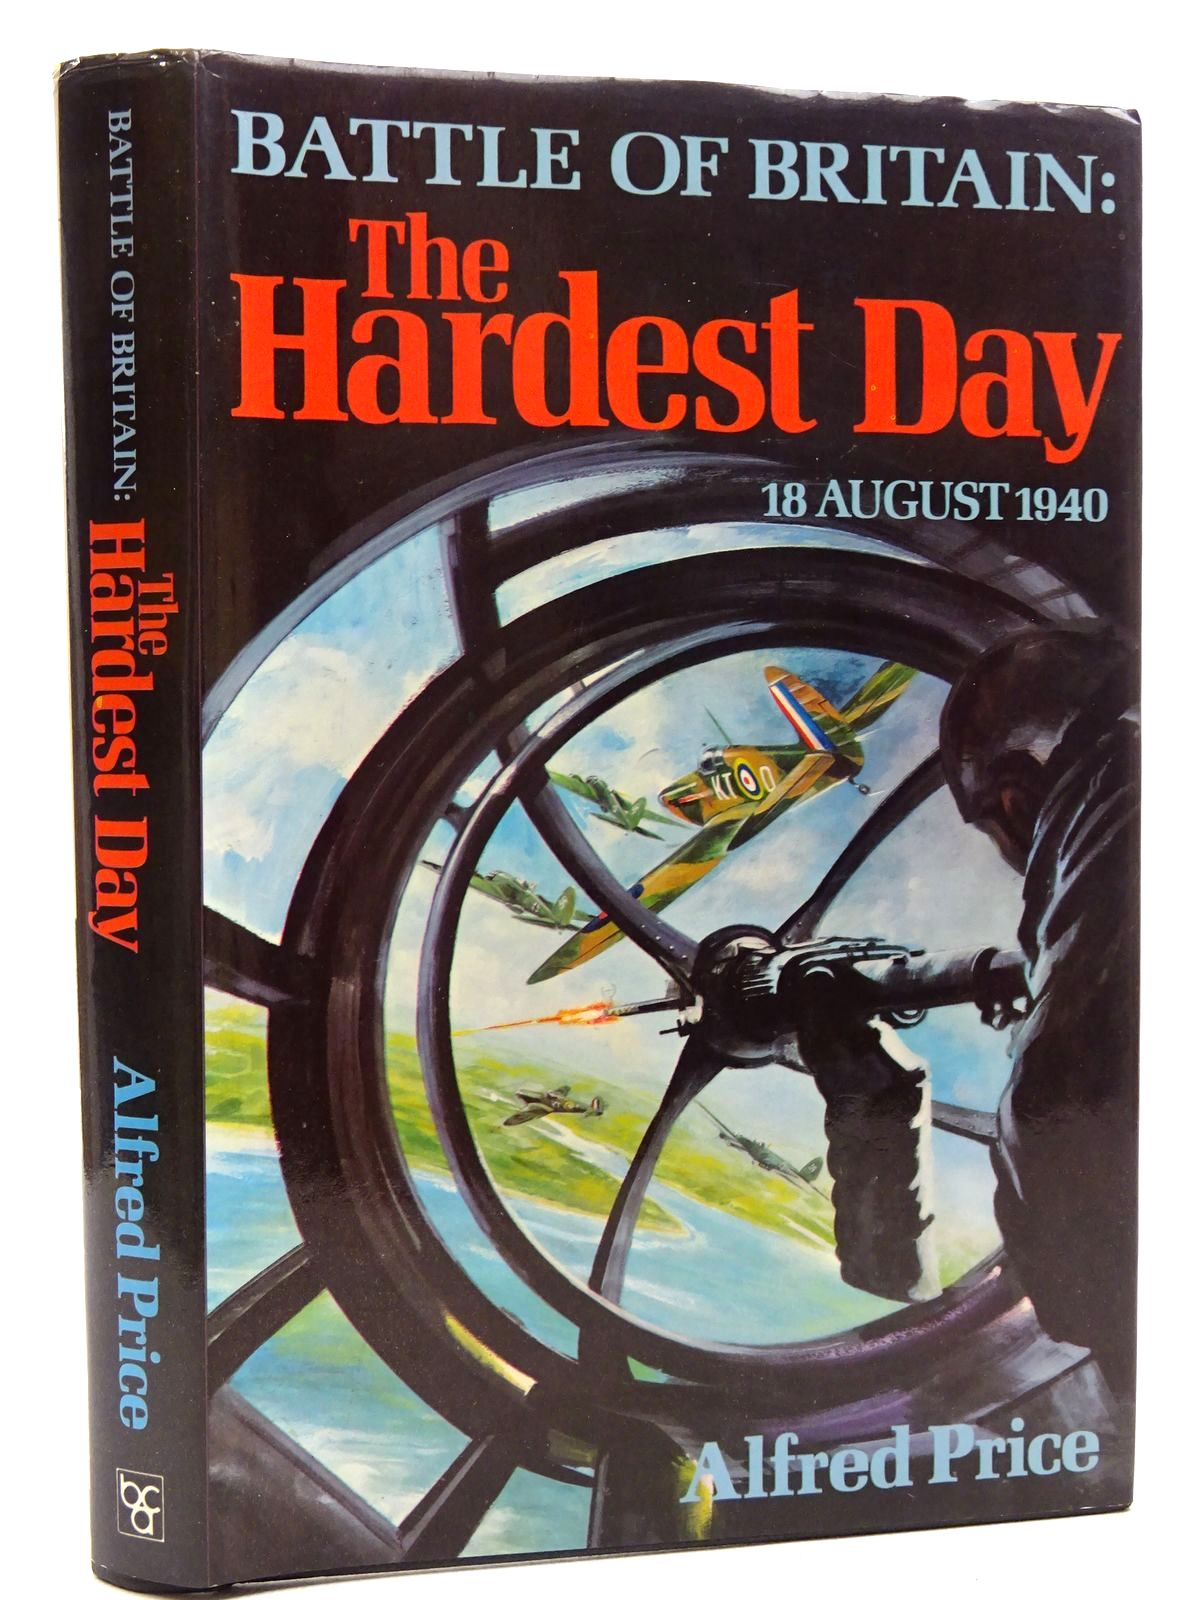 Photo of BATTLE OF BRITAIN: THE HARDEST DAY 18 AUGUST 1940 written by Price, Alfred published by Book Club Associates (STOCK CODE: 1610384)  for sale by Stella & Rose's Books